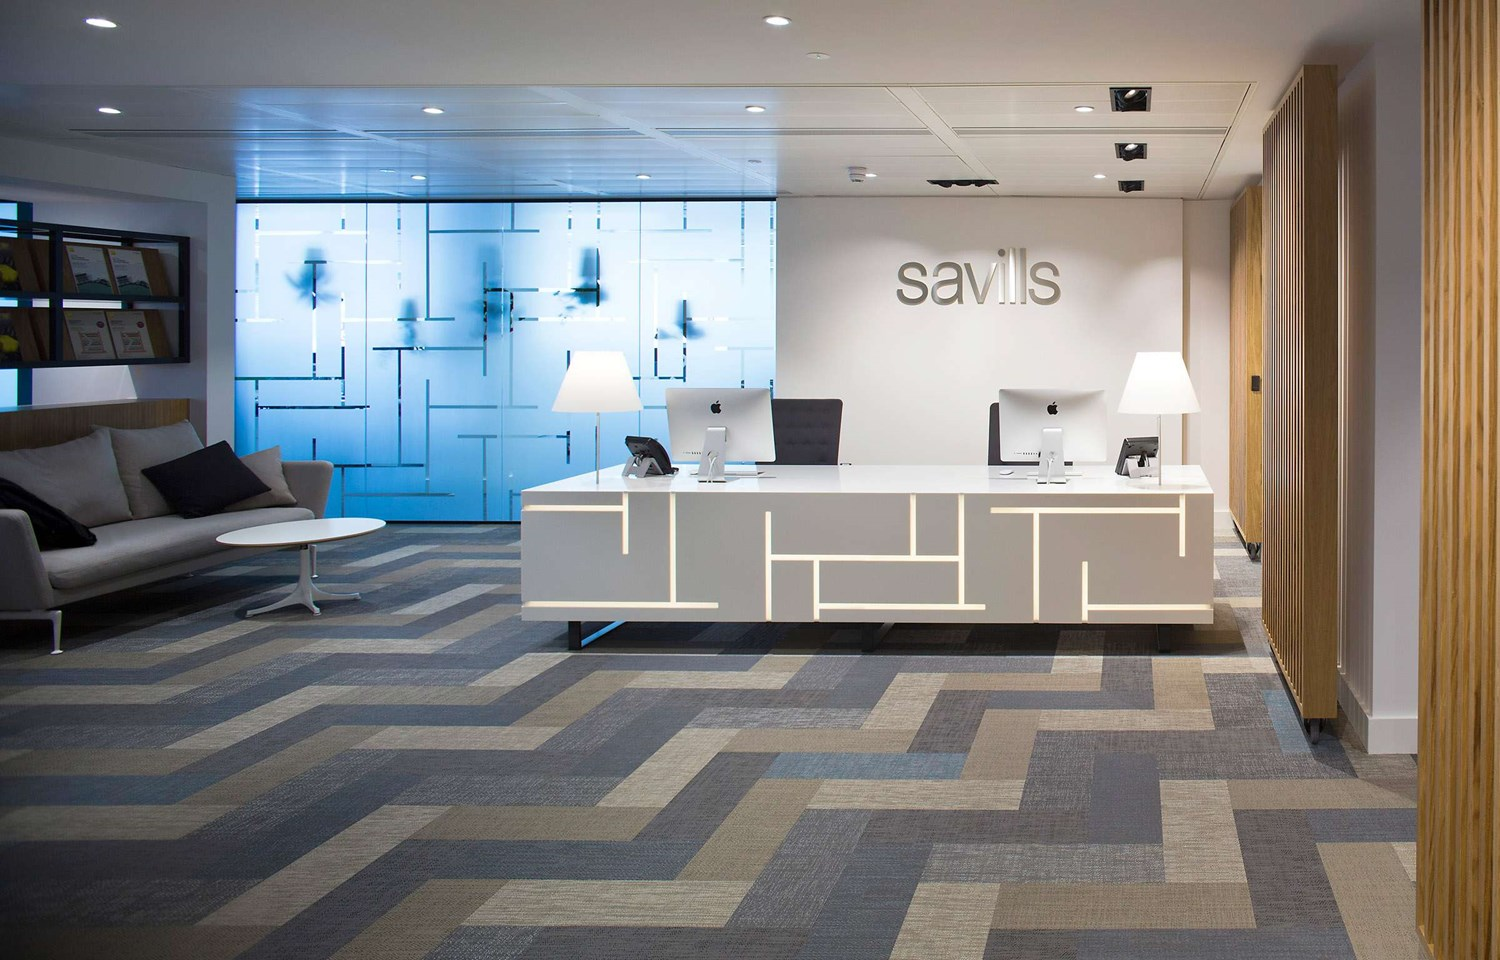 Savills, United Kingdom